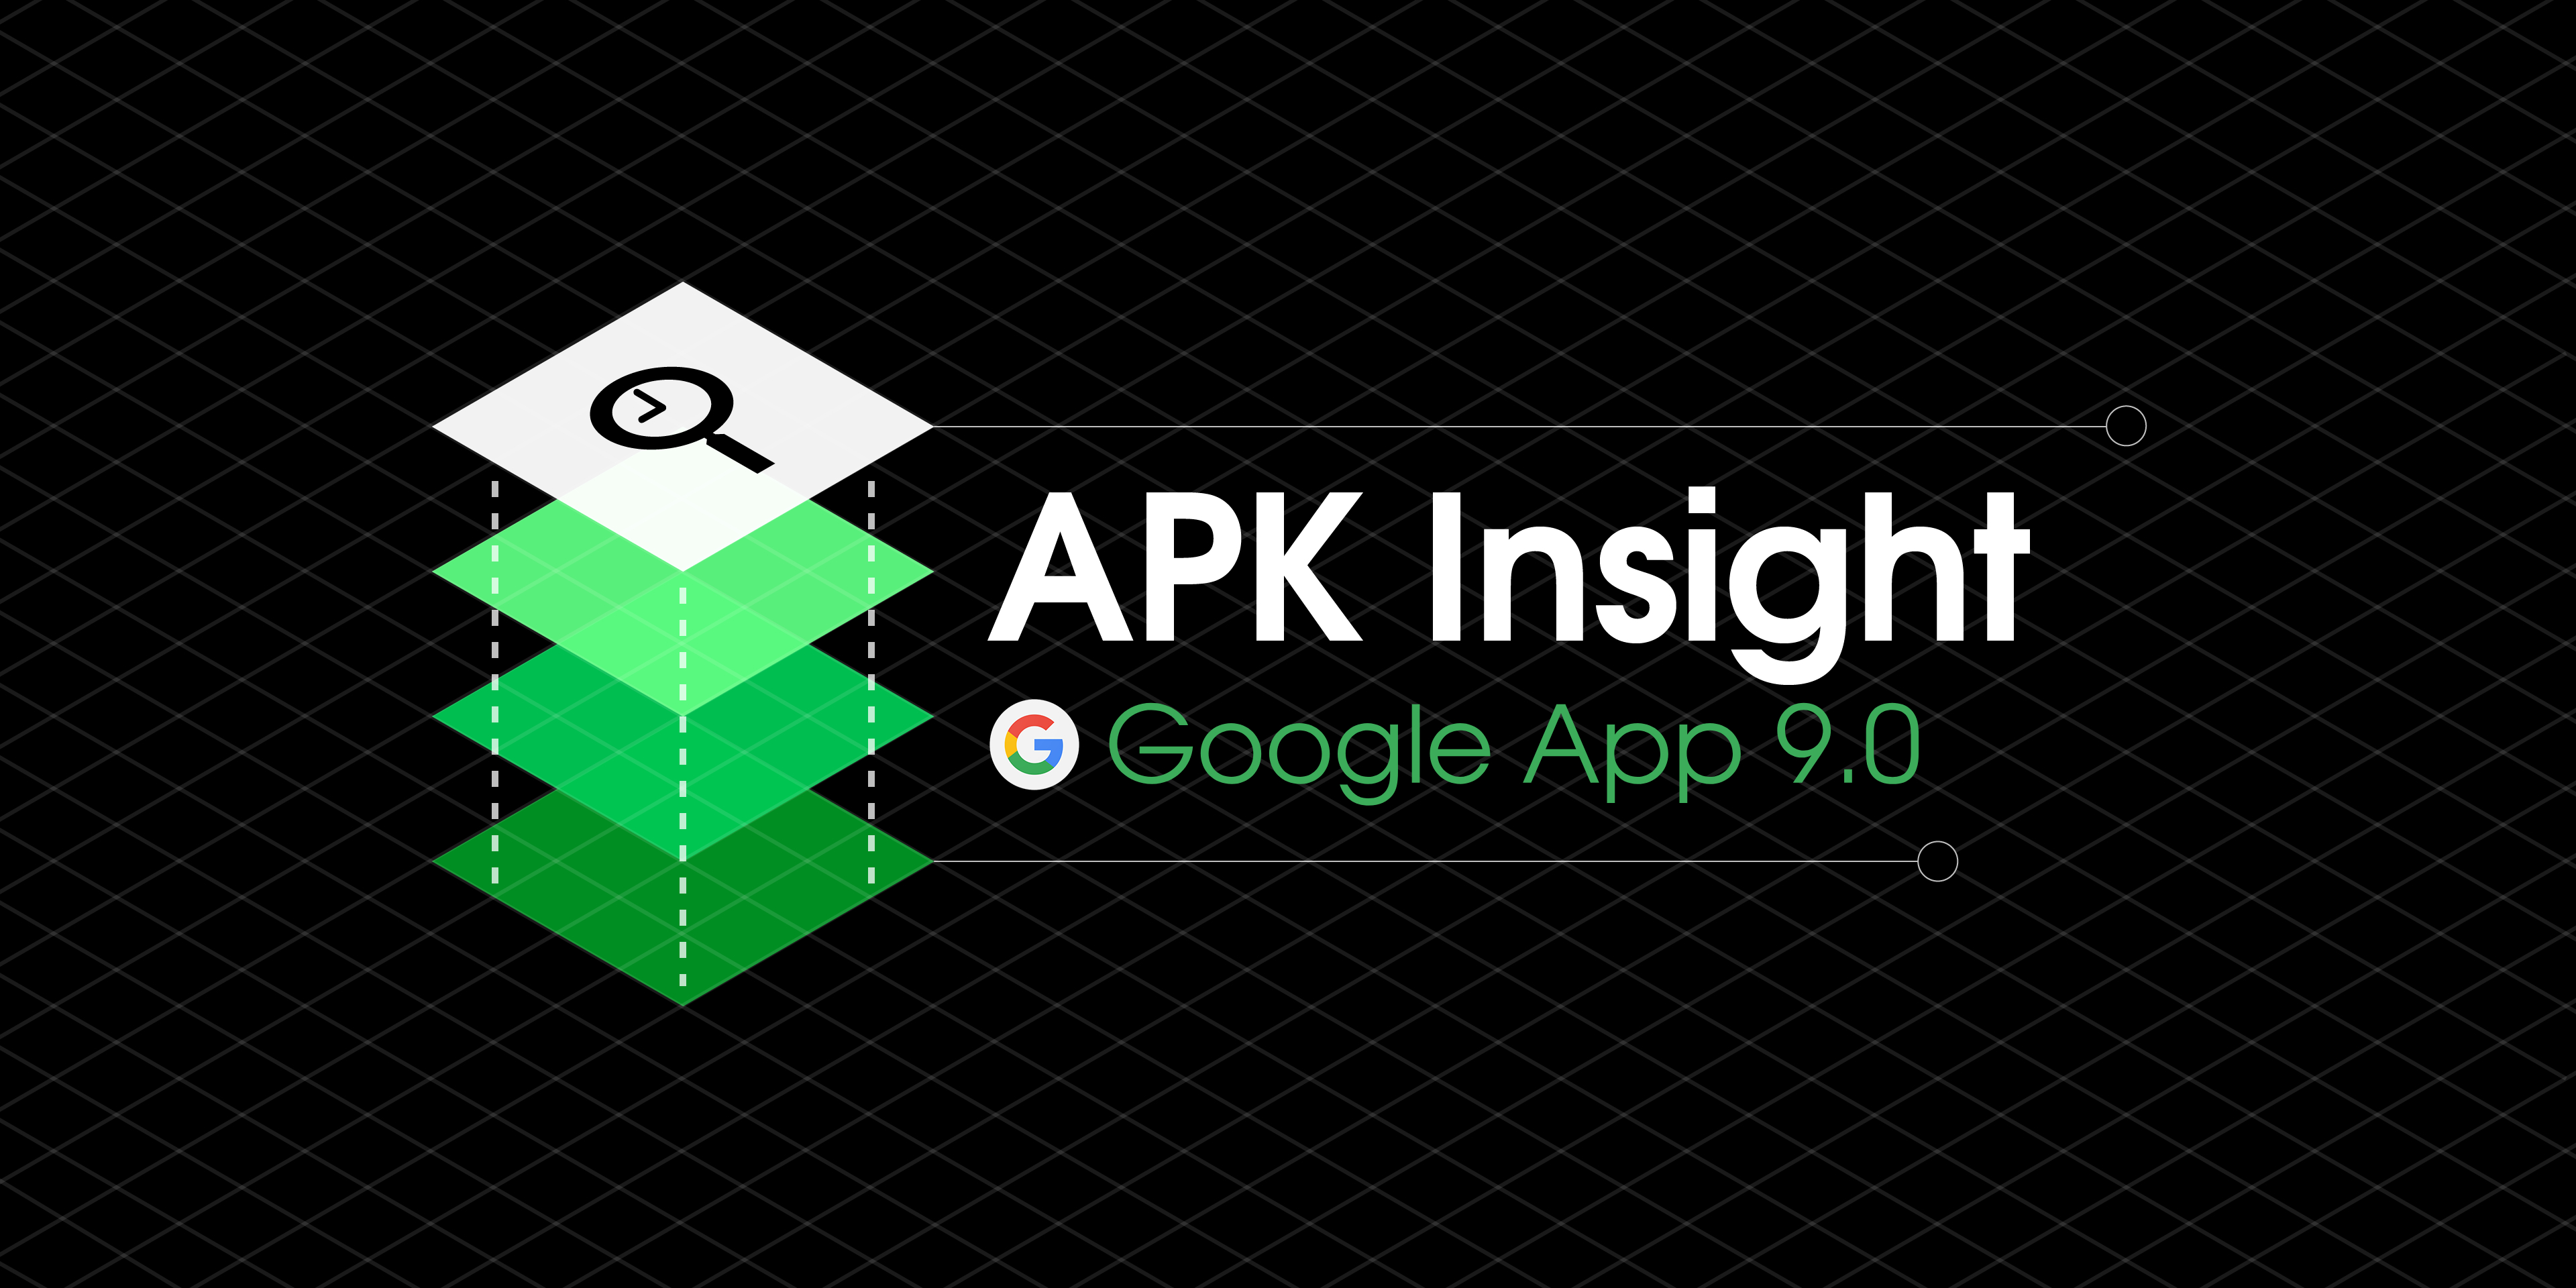 [Update: AOD, Pixel Launcher weather fixed] Google app 9.0 preps Podcasts transcription, rounded Assistant, 9to5G shout-out [APK Insight]